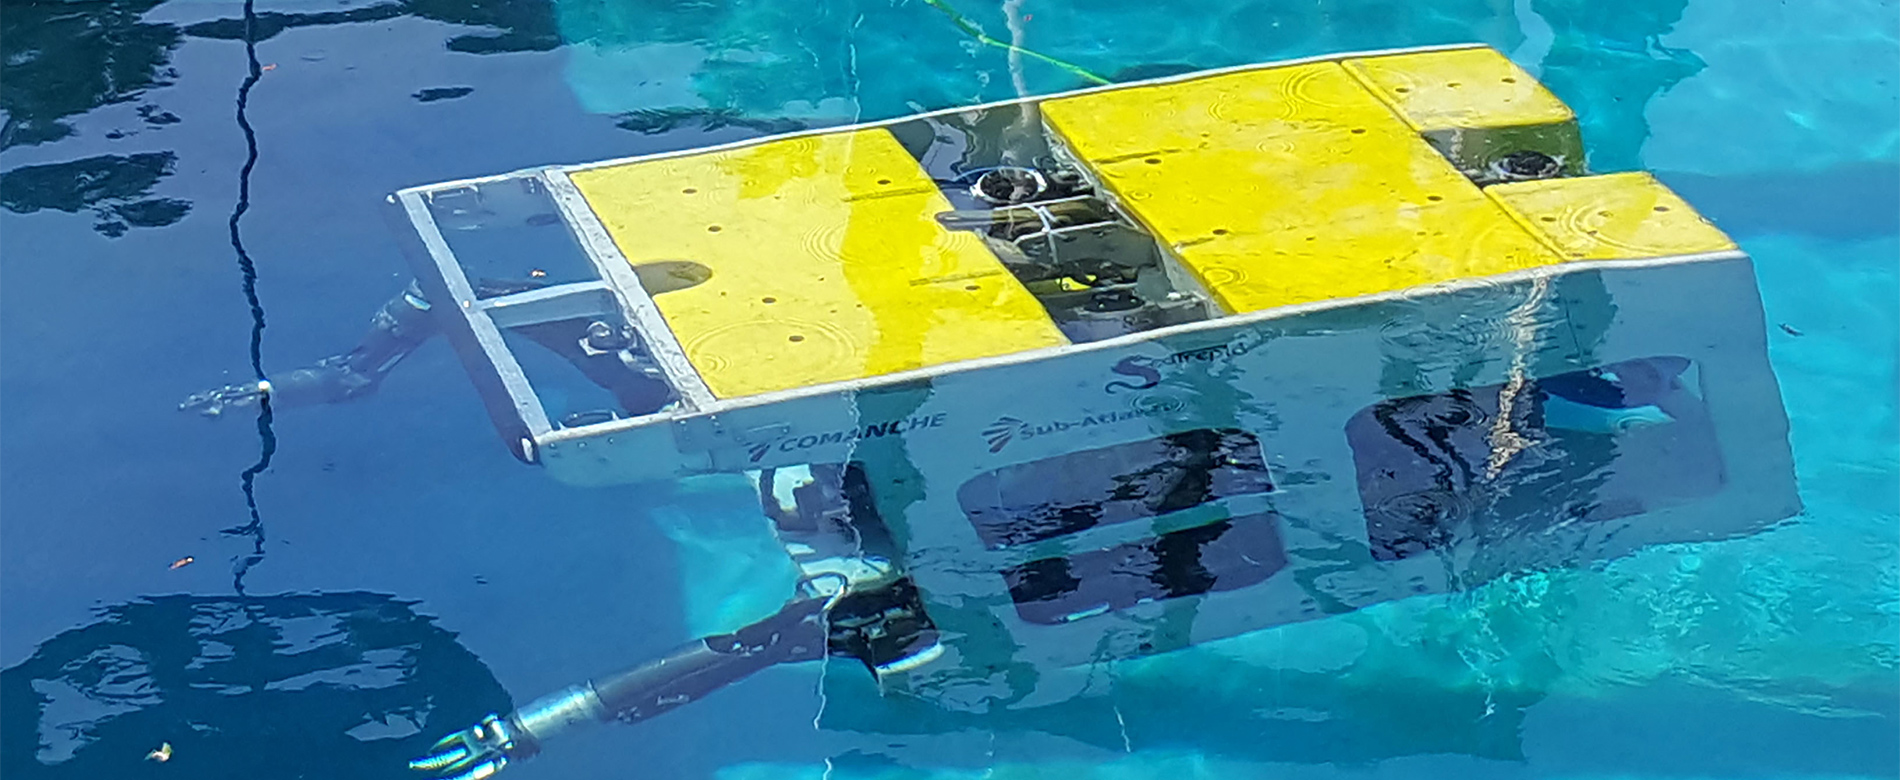 Comanche ROV in Underwater Test Pool at SeaTrepid Facility